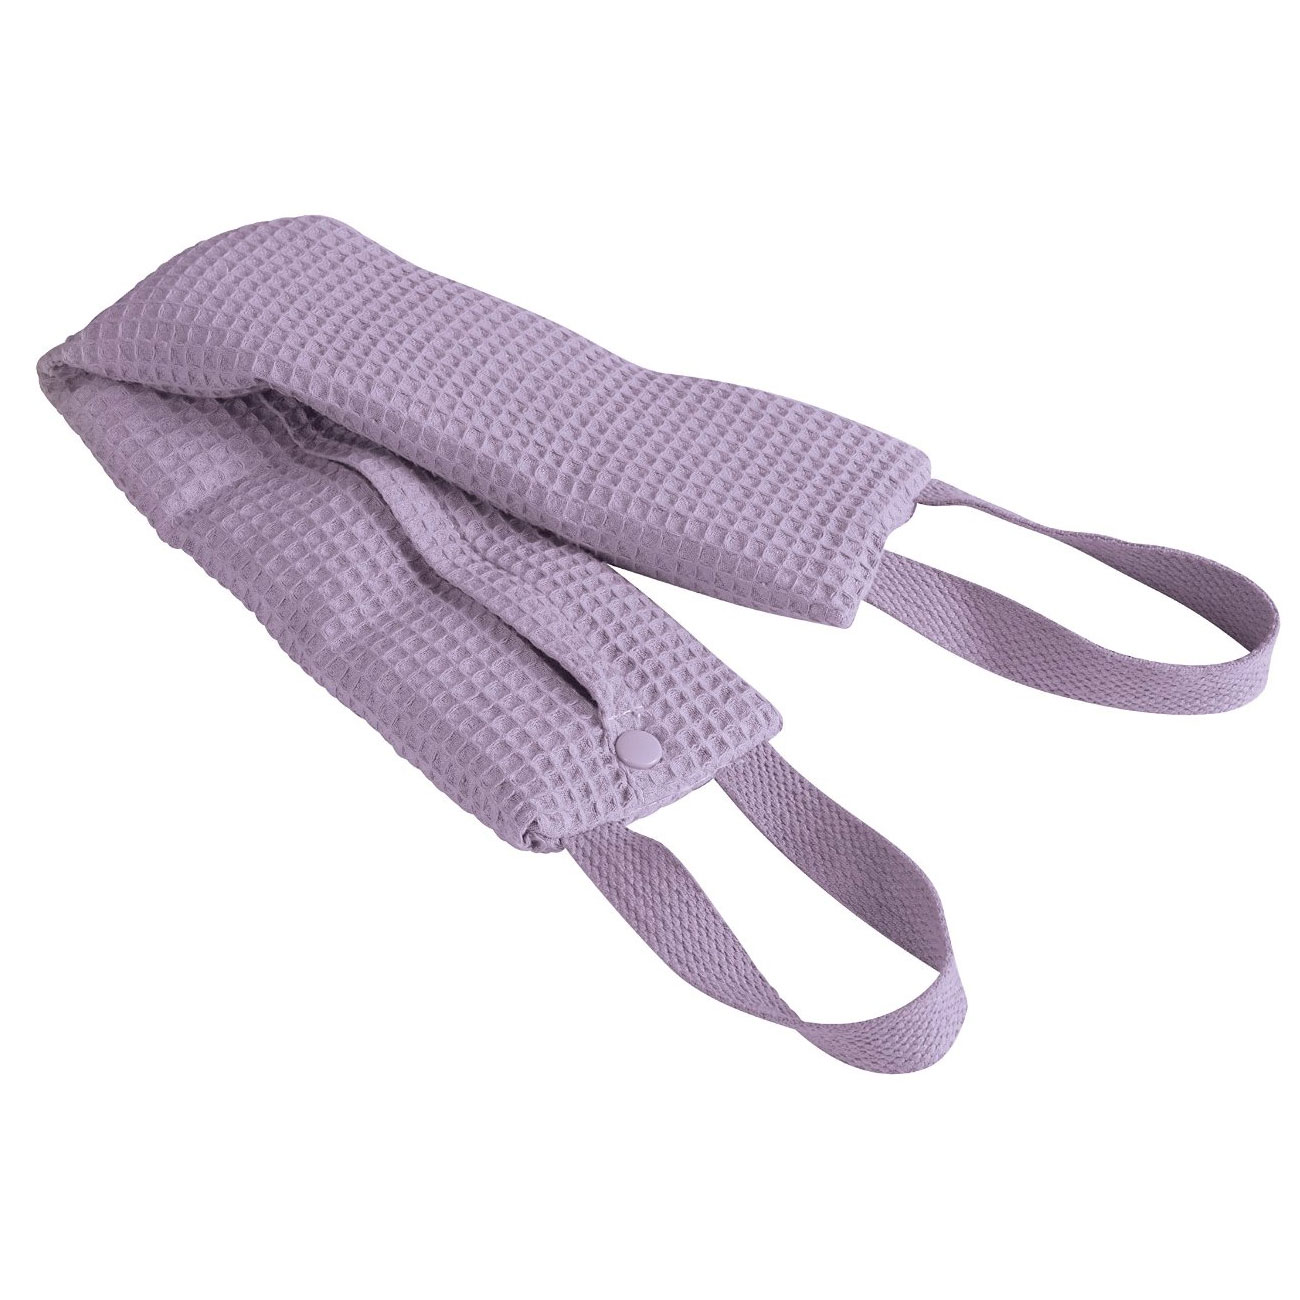 HealthSmart Relax-A-Bac All-Natural Hot-Cold Scarf Wrap - Lavender